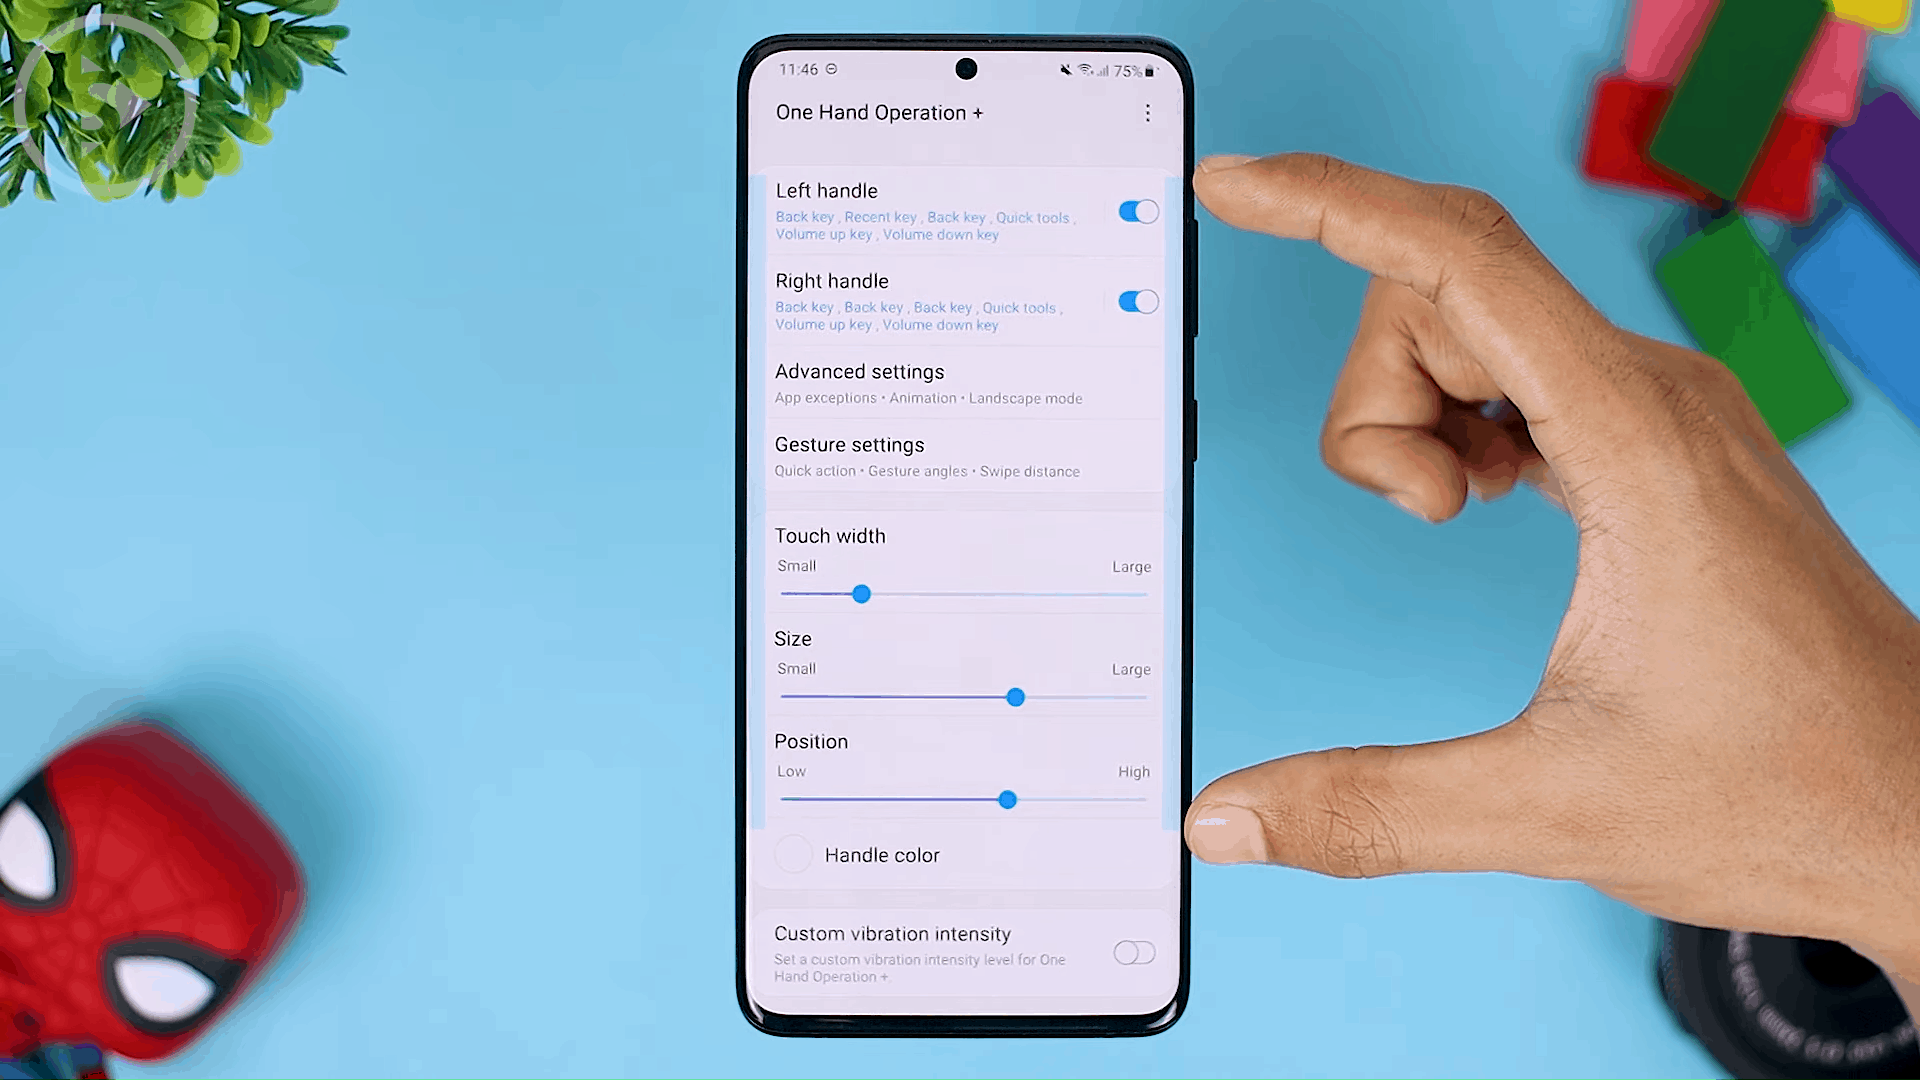 Touch Width - The Latest One Hand Operation+ Feature in Update 2021 - A MANDATORY Application For Full Screen Gesture Users